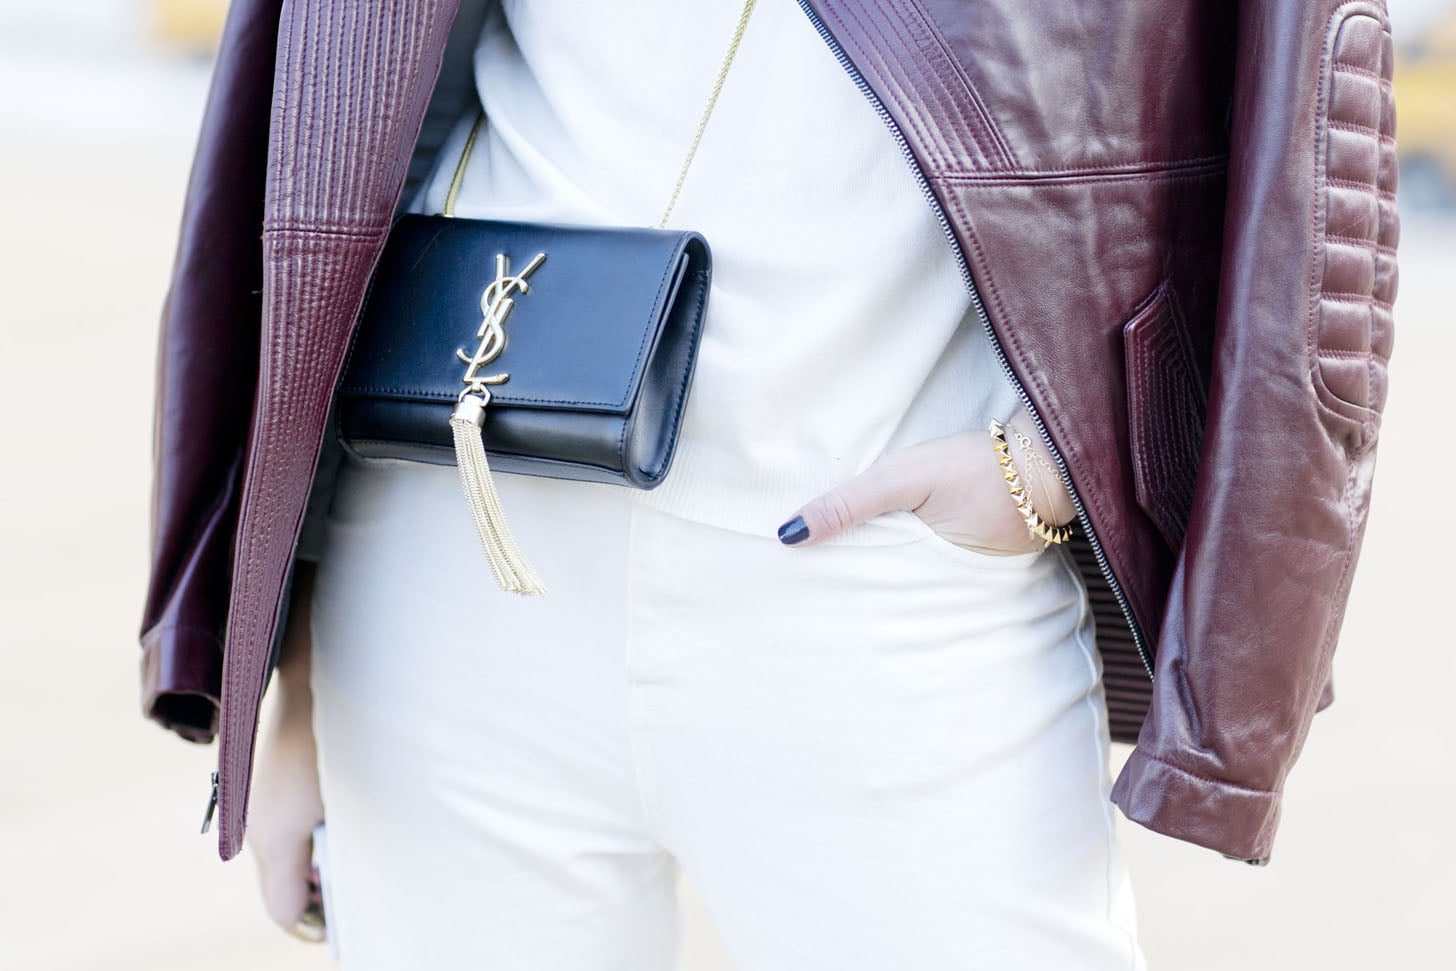 Delicate gold jewels and a dainty YSL bag were the perfect picks against Winter white and burgundy. Source: Tim Regas